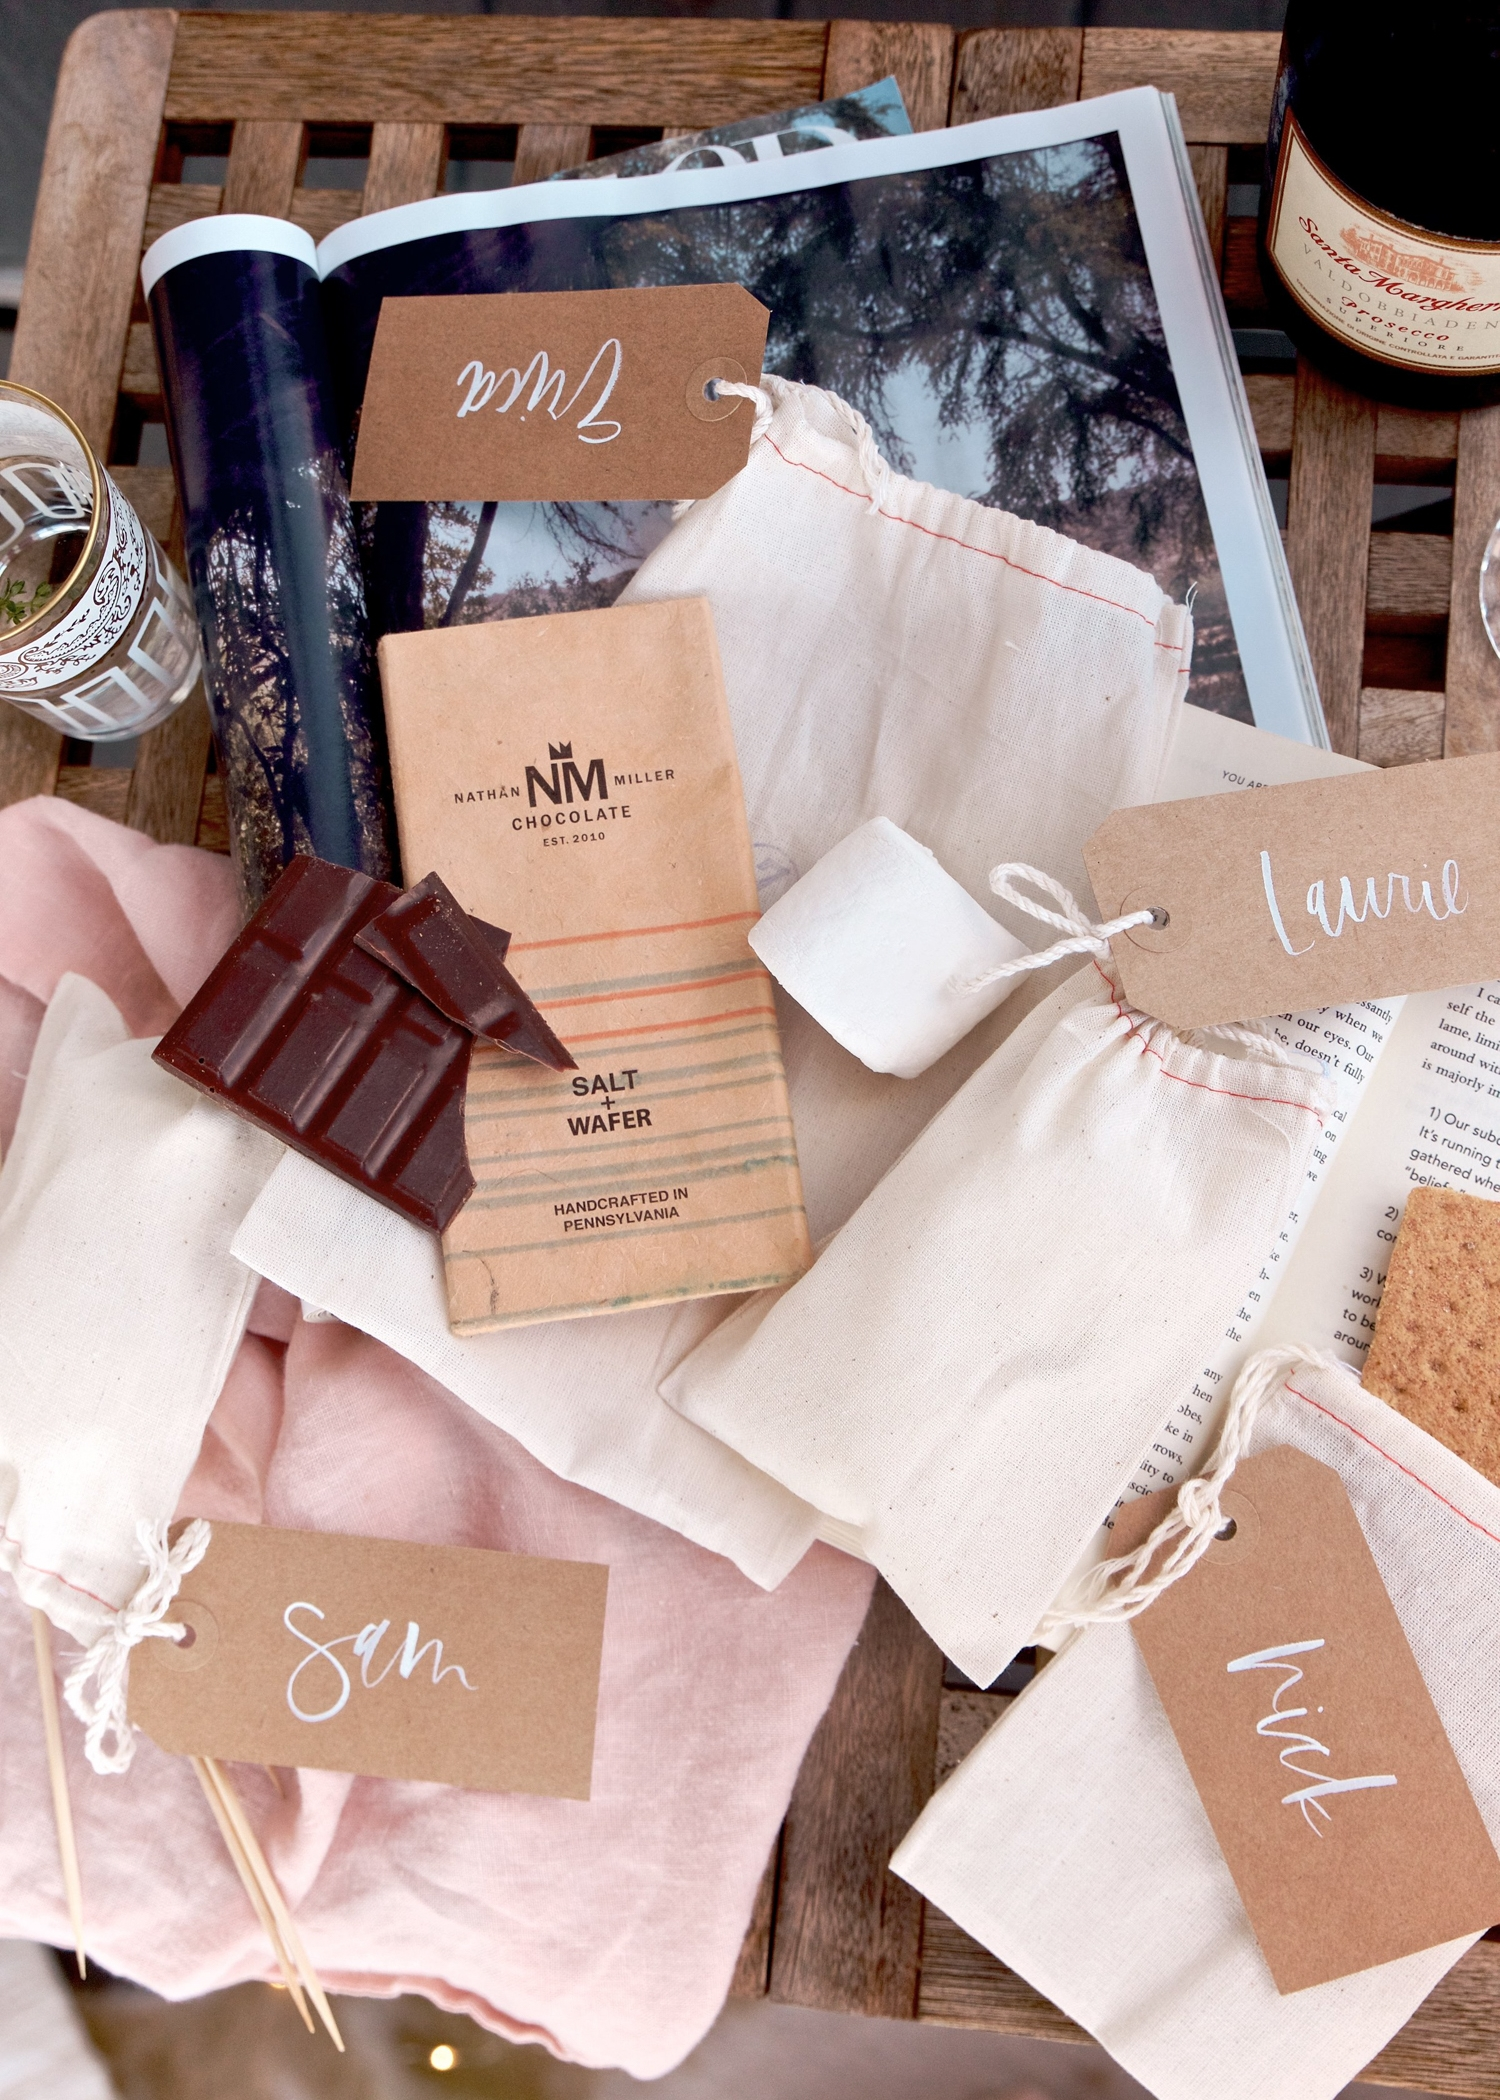 Camping must have - s'more kits! | A Fabulous Fete